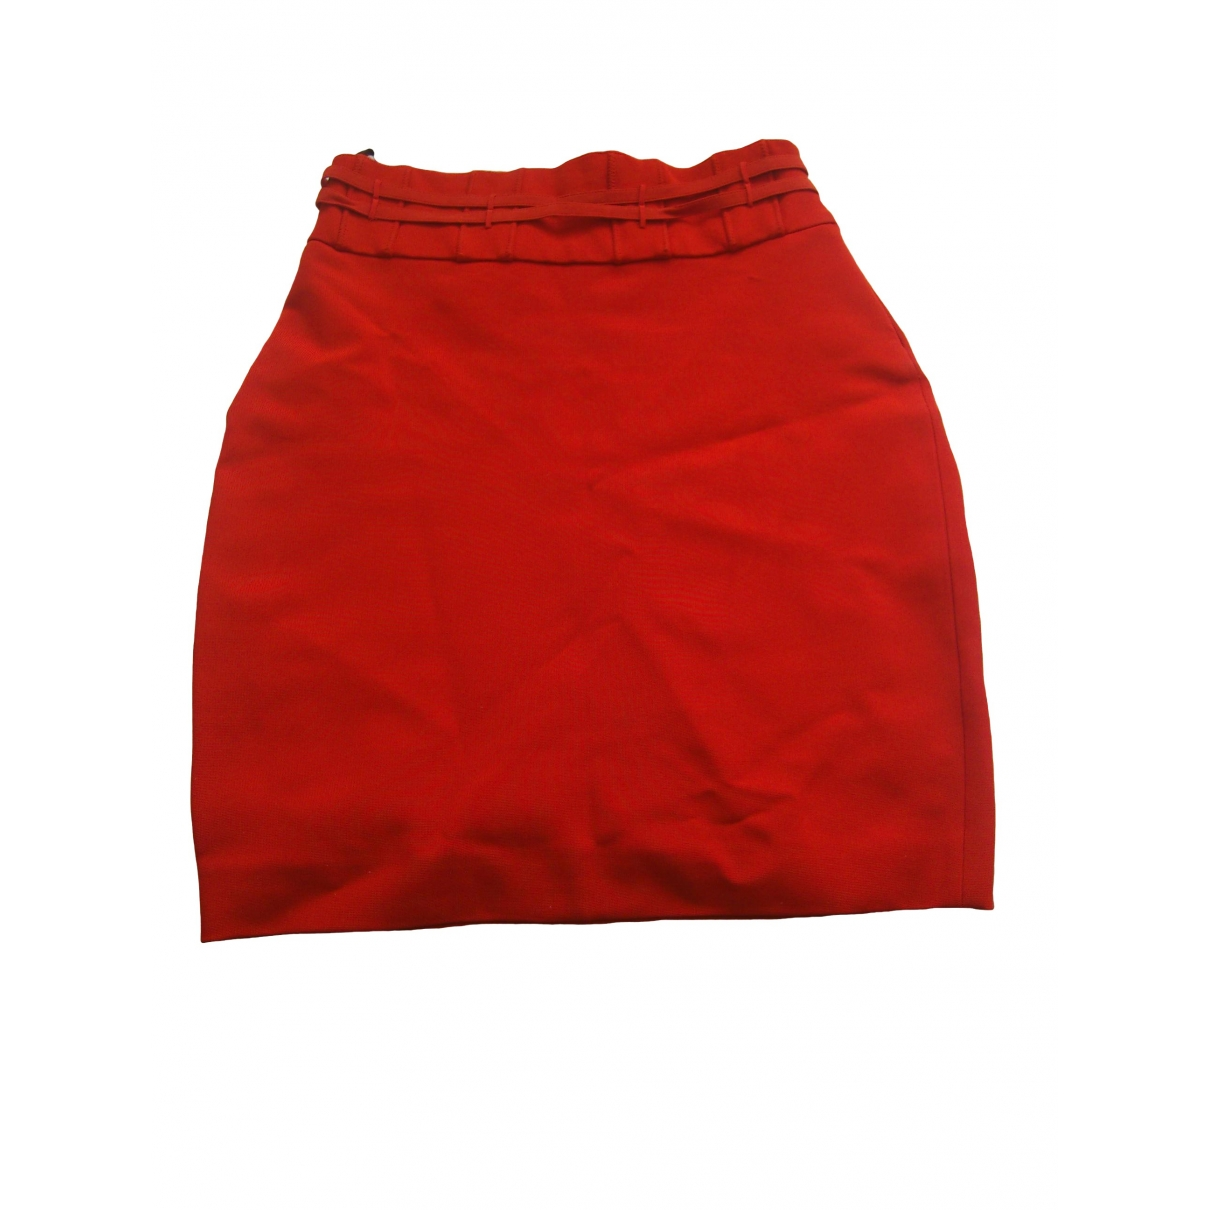 Roberto Cavalli \N Red skirt for Women 42 IT